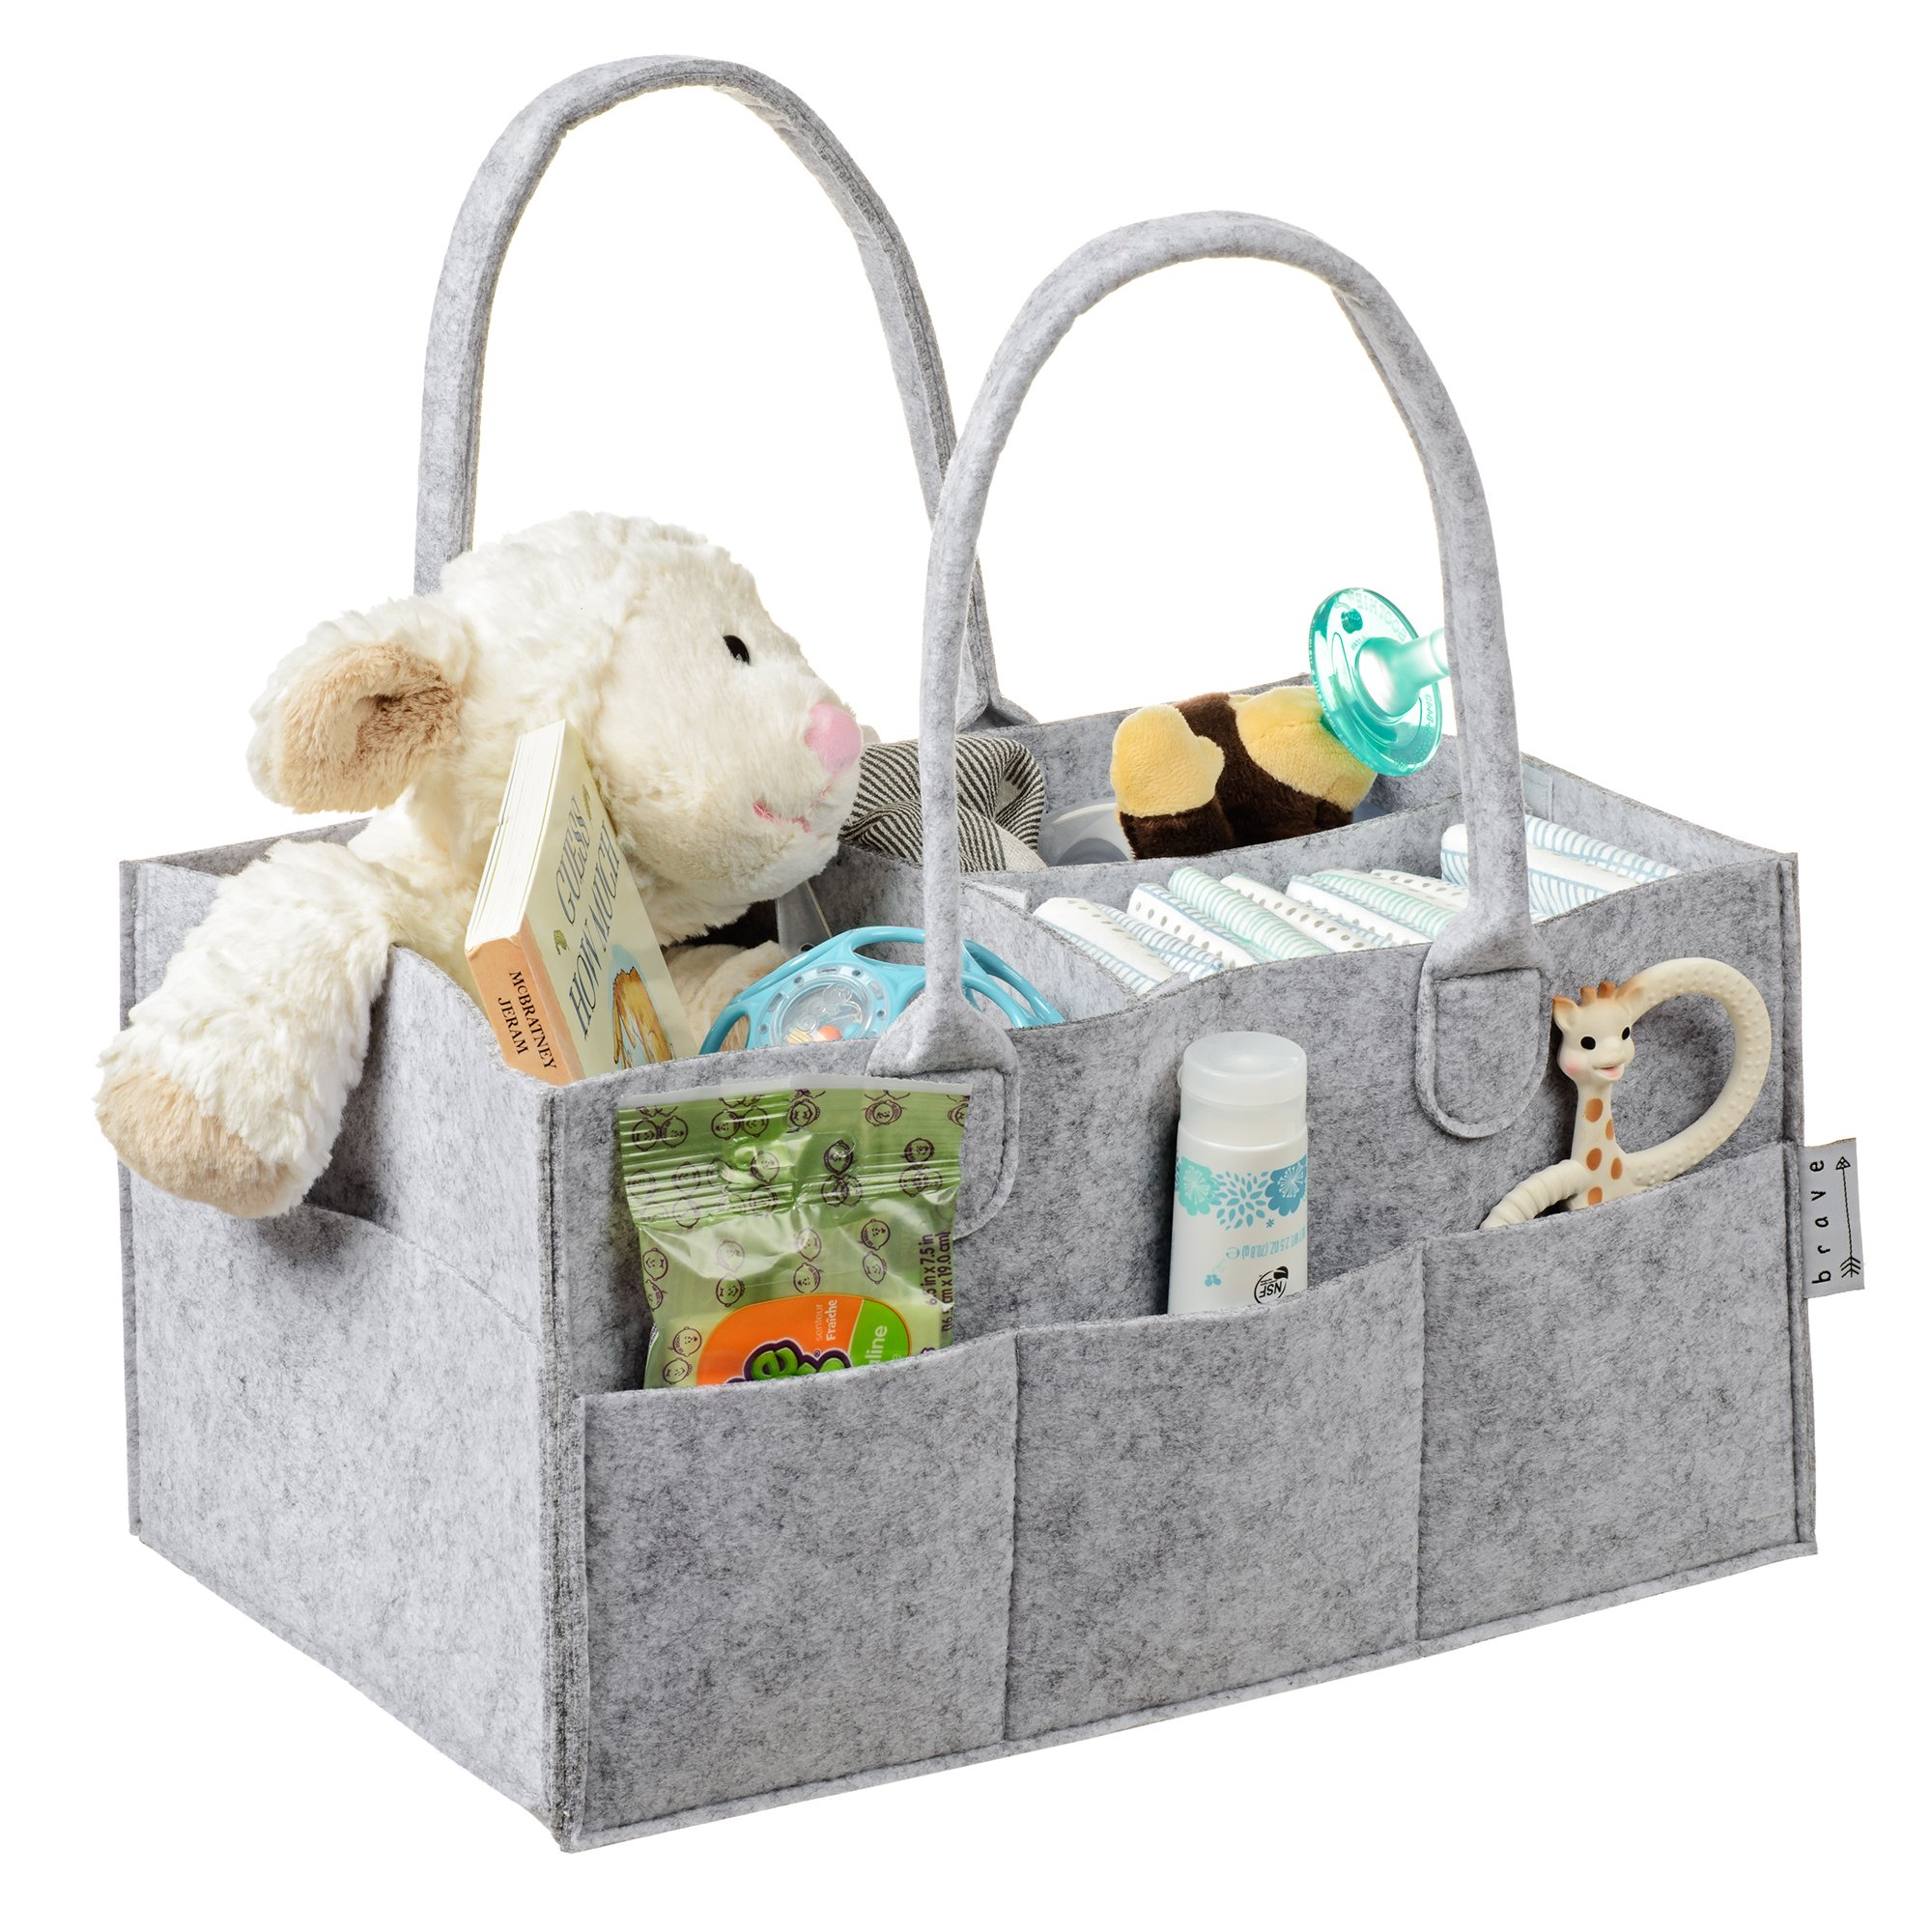 Cheap Diaper Baby Shower Gift Find Diaper Baby Shower Gift Deals On